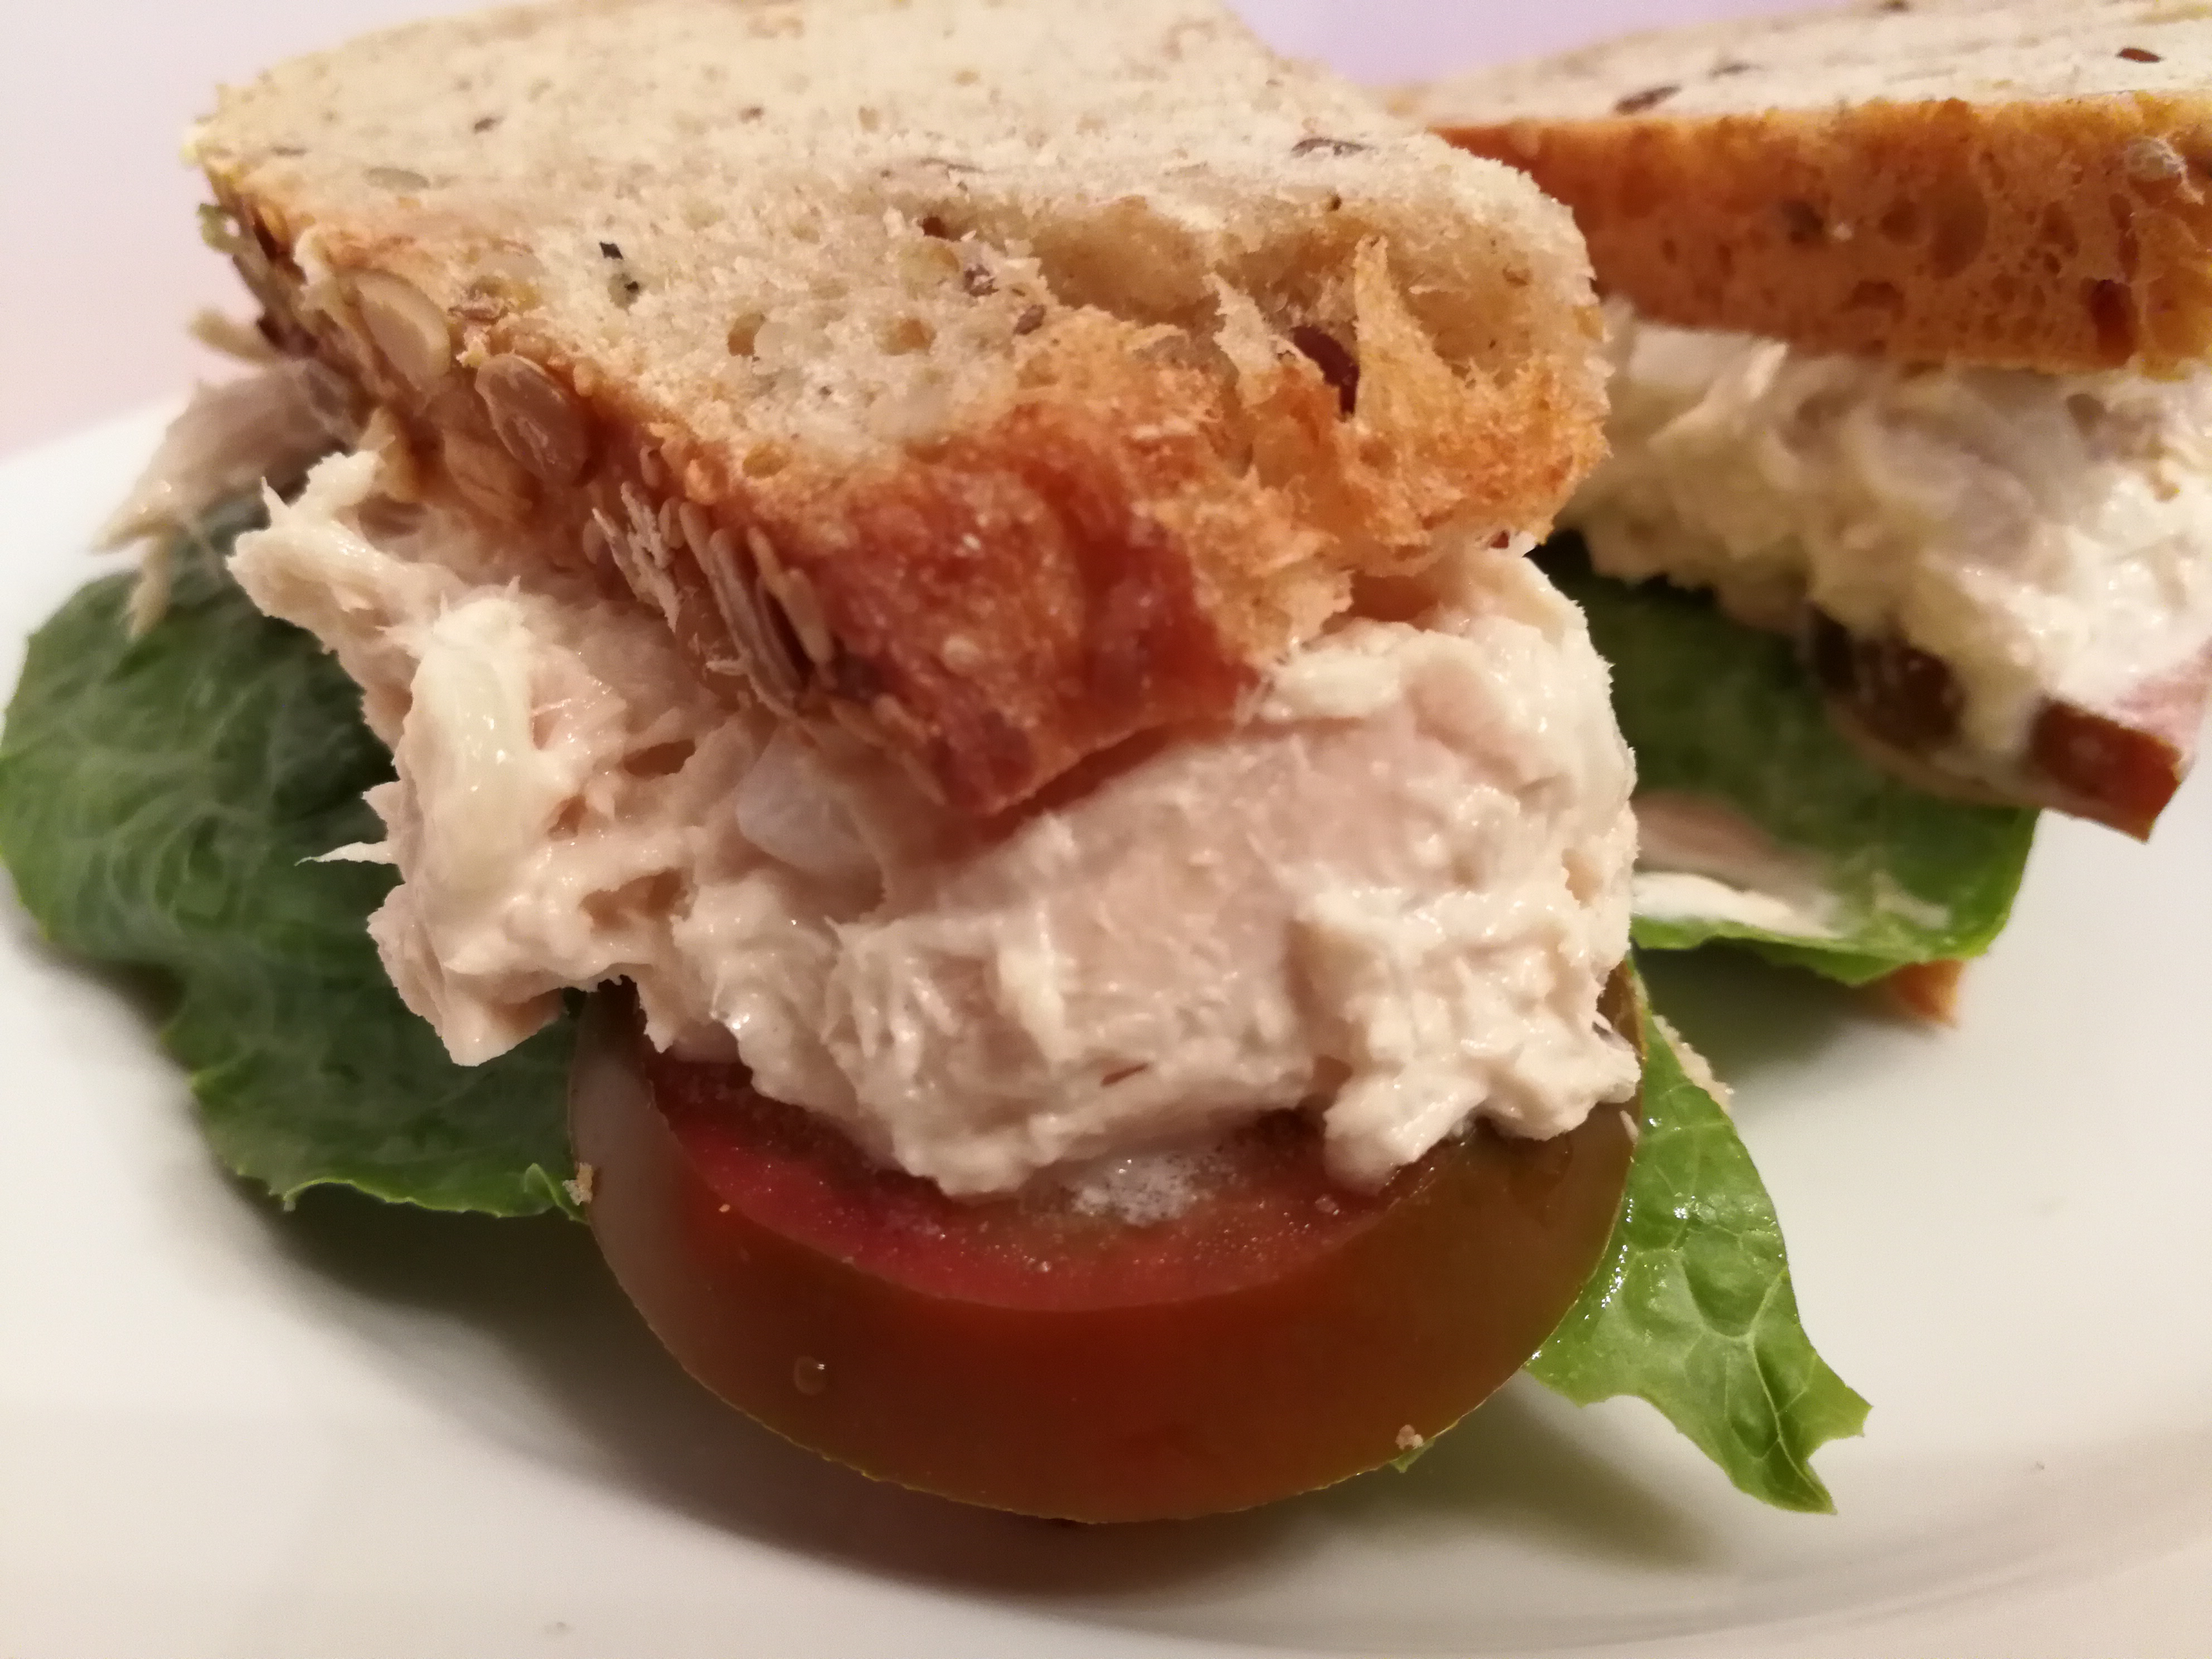 The Best Tunafish Salad Sandwich - A Food Lover\'s Delight